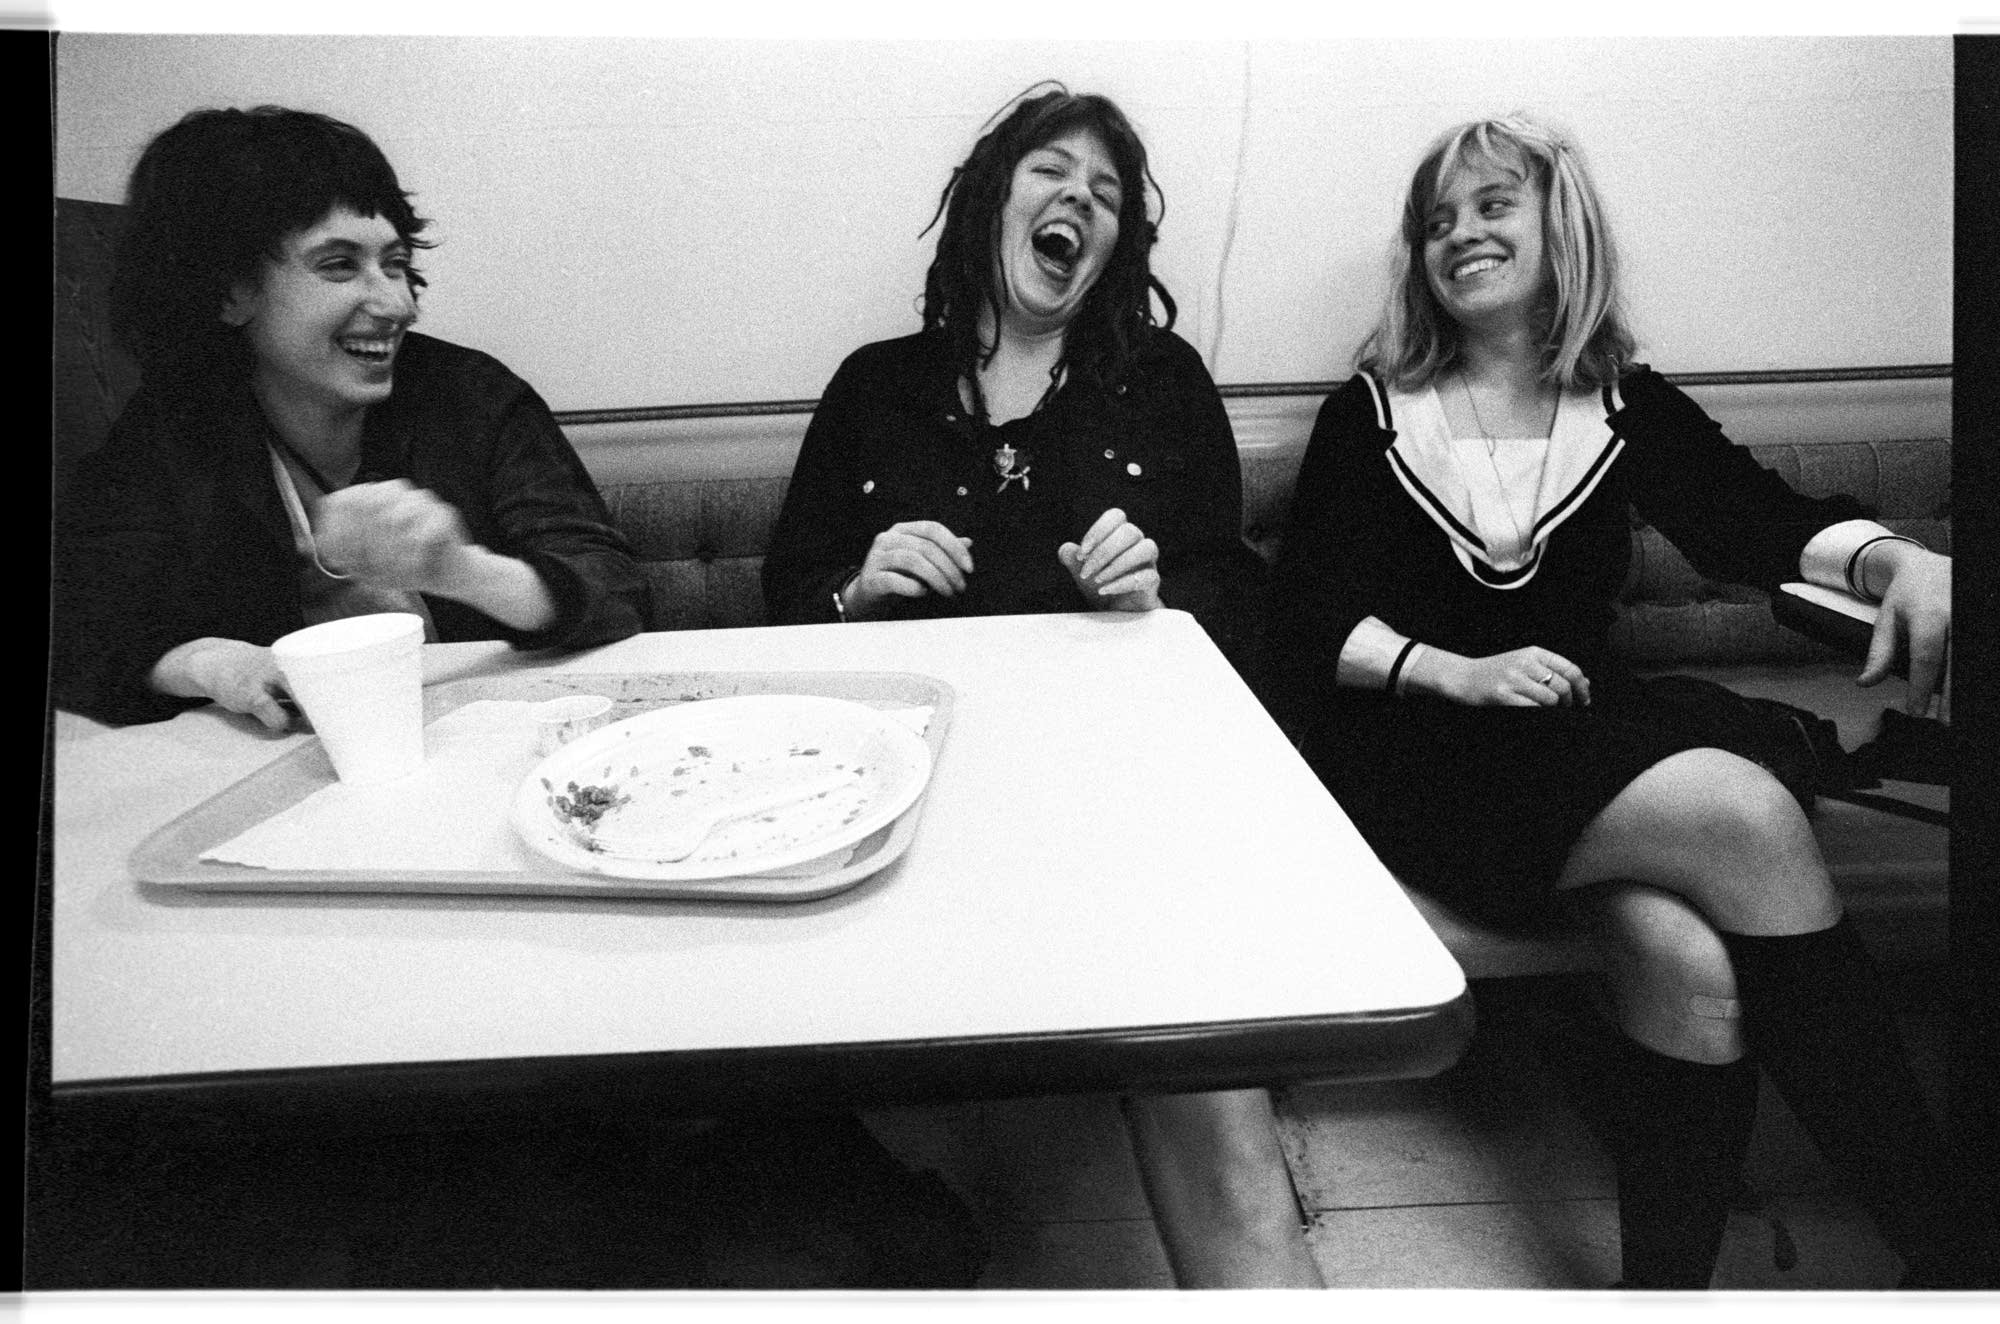 On the road with Babes in Toyland,1990